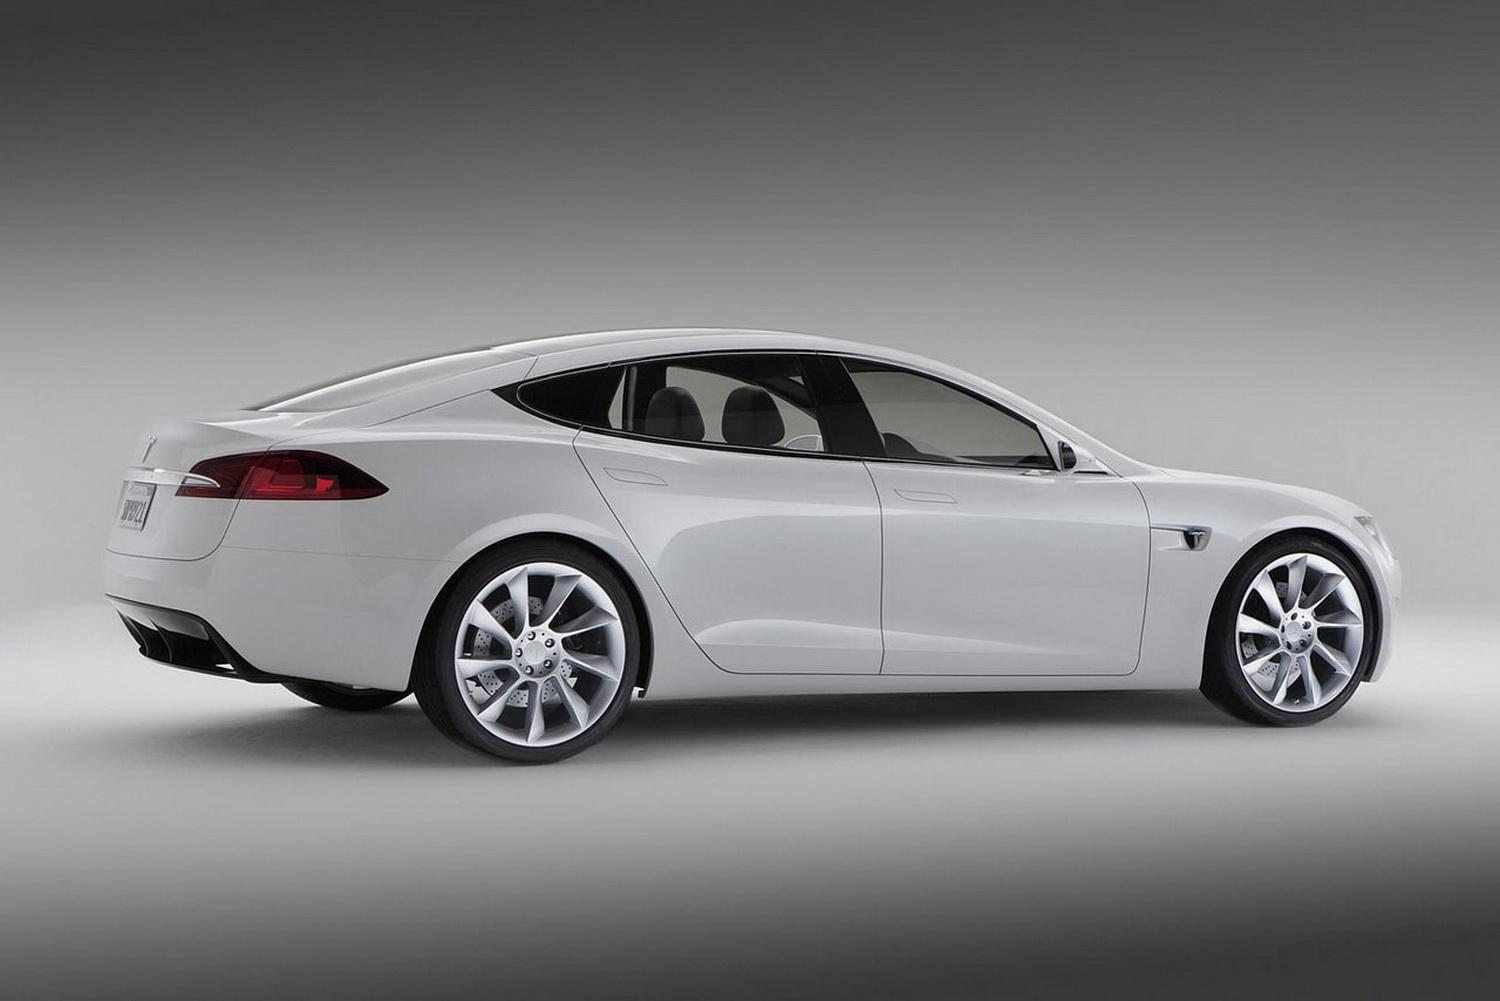 Tesla Model S Elcetric Car Img Its Your Auto World New - All models of tesla